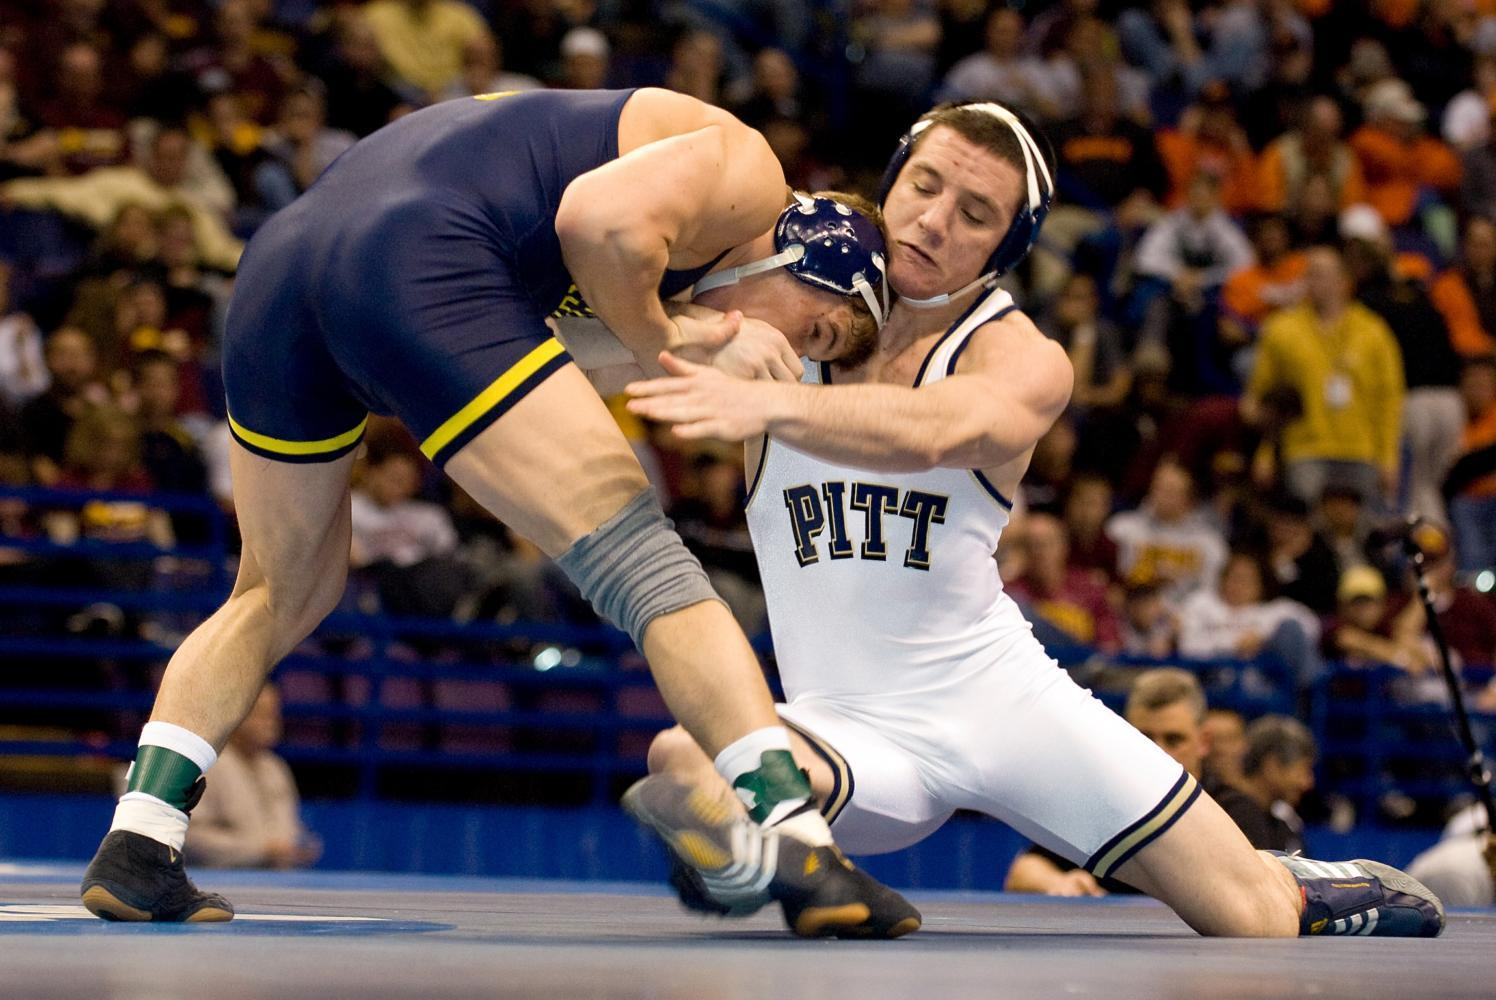 Keith Gavin beat Michigan's Steve Luke to win the 174-pound national championship in 2008. (Photo Courtesy of Pitt Athletics)